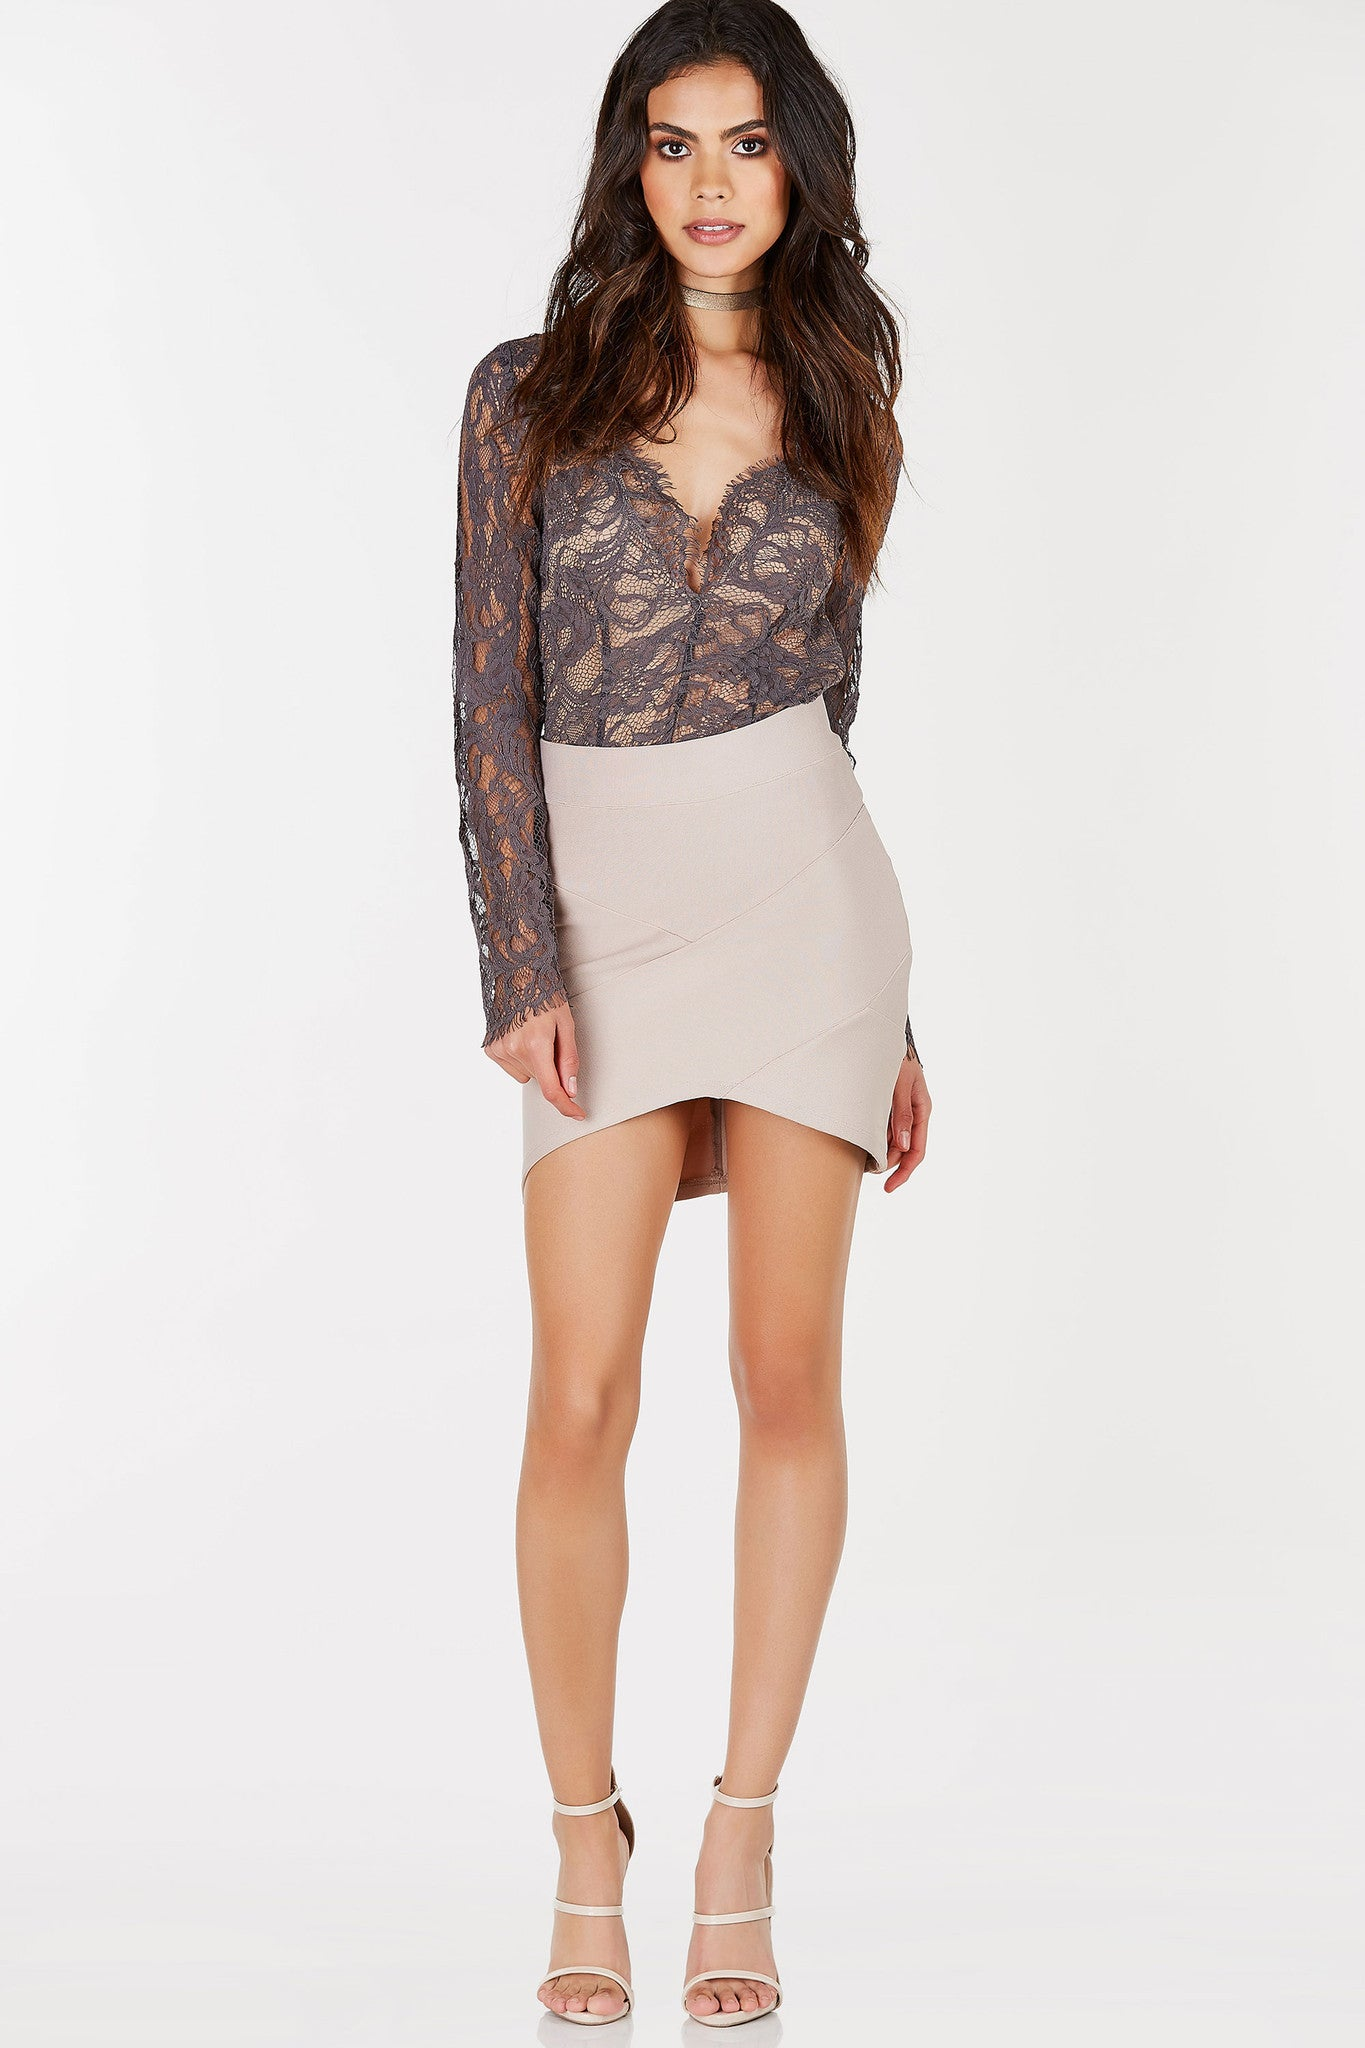 A sultry long sleeve bodysuit with a gorgeous lace exterior, perfect for nighttime looks. Deep V-neckline with eyelash trim all around. Nude lining in front for a chic contrast. Cheeky cut with snap on buttons for closure. Pair with a midi skirt and stilettos for an irresitible party outfit!